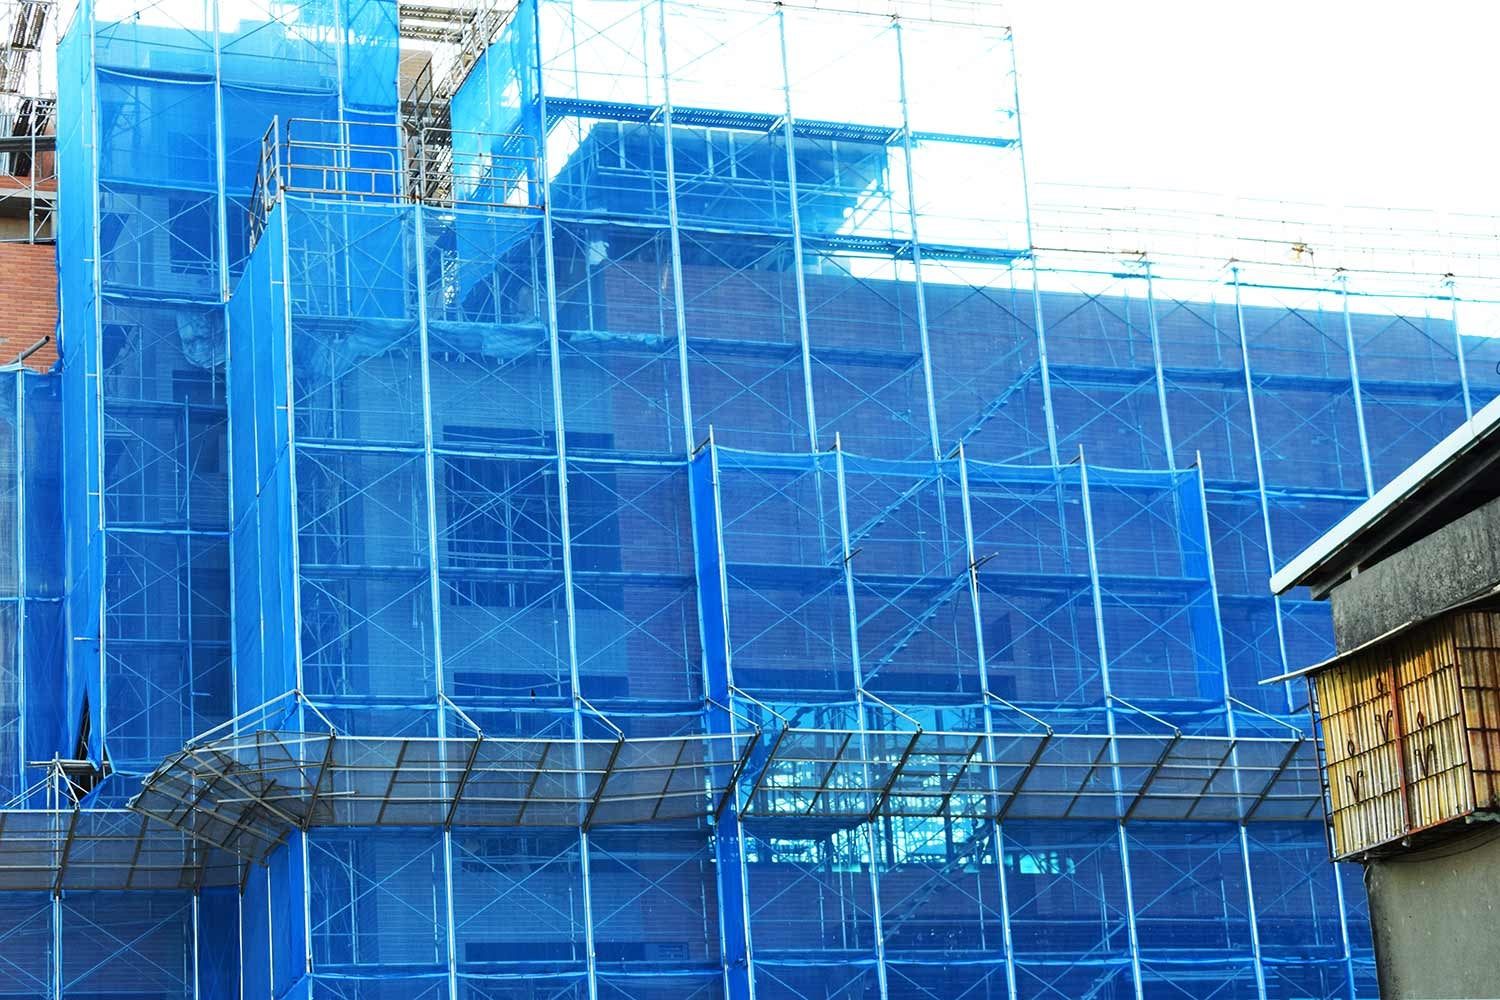 Scaffolding around building